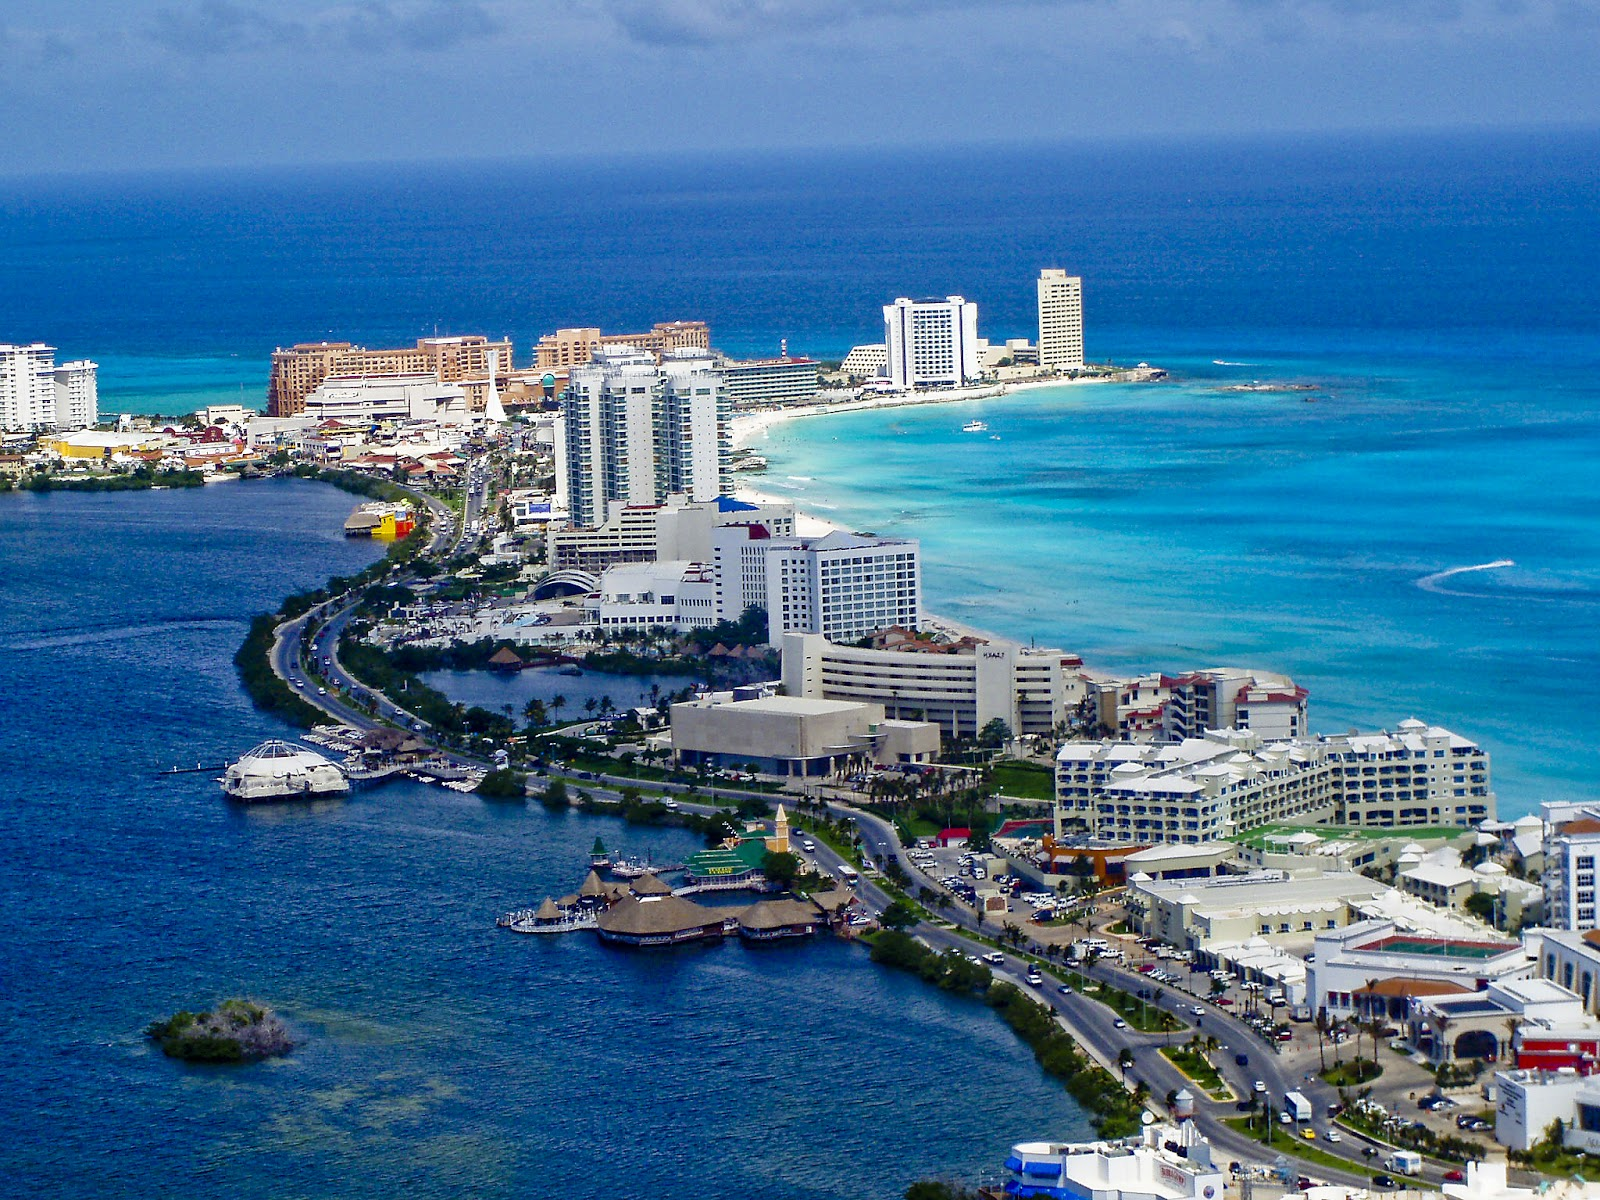 Asked by dentistar promotions, we have included in cancun lodging in some of our packages